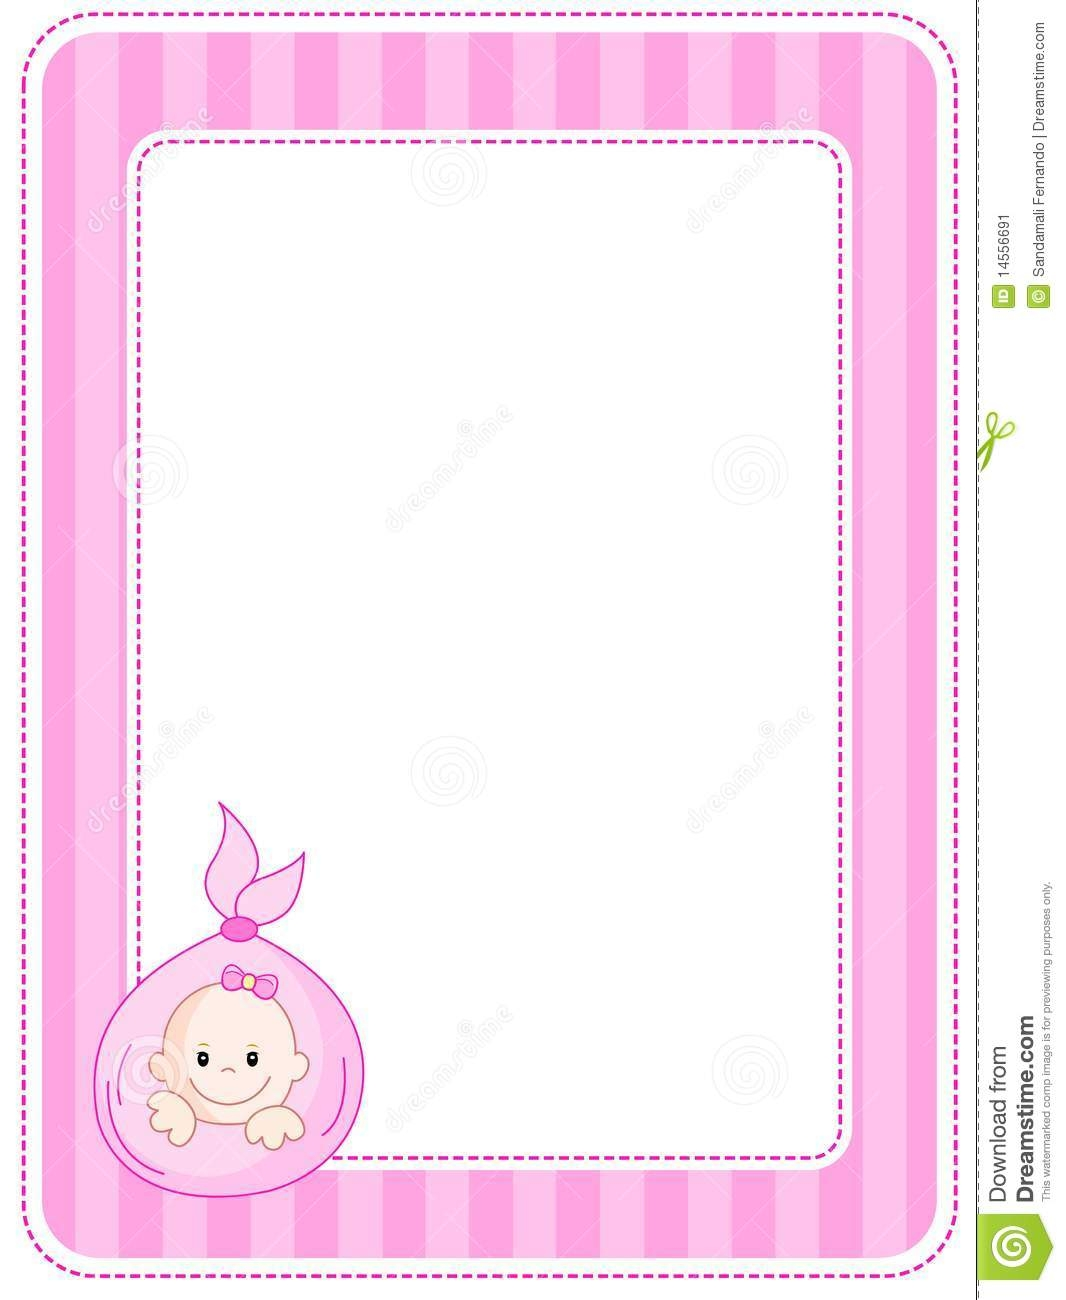 graphic about Free Printable Baby Shower Borders called Child Shower Border Paper - Plans upon Foter